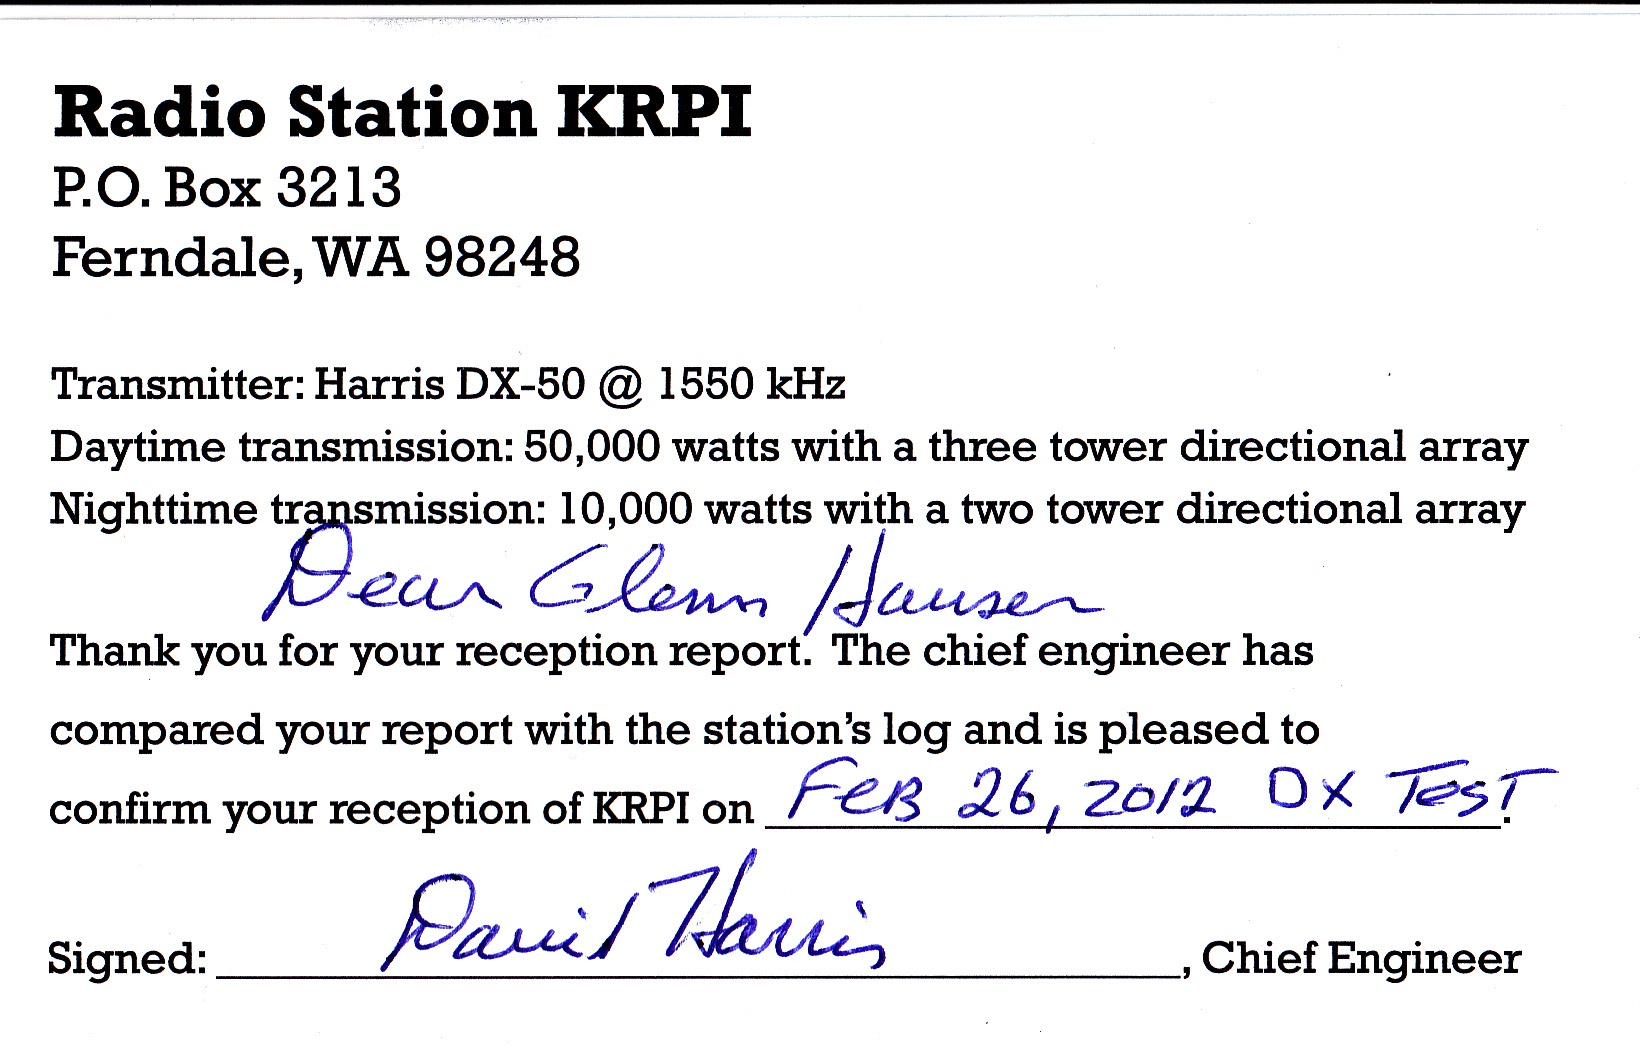 Dx Listening Digest 12 10 March 7 2012 220 3 Phase Wiring Diagram Http Wwwchaskicom Homemachinist Krpi2